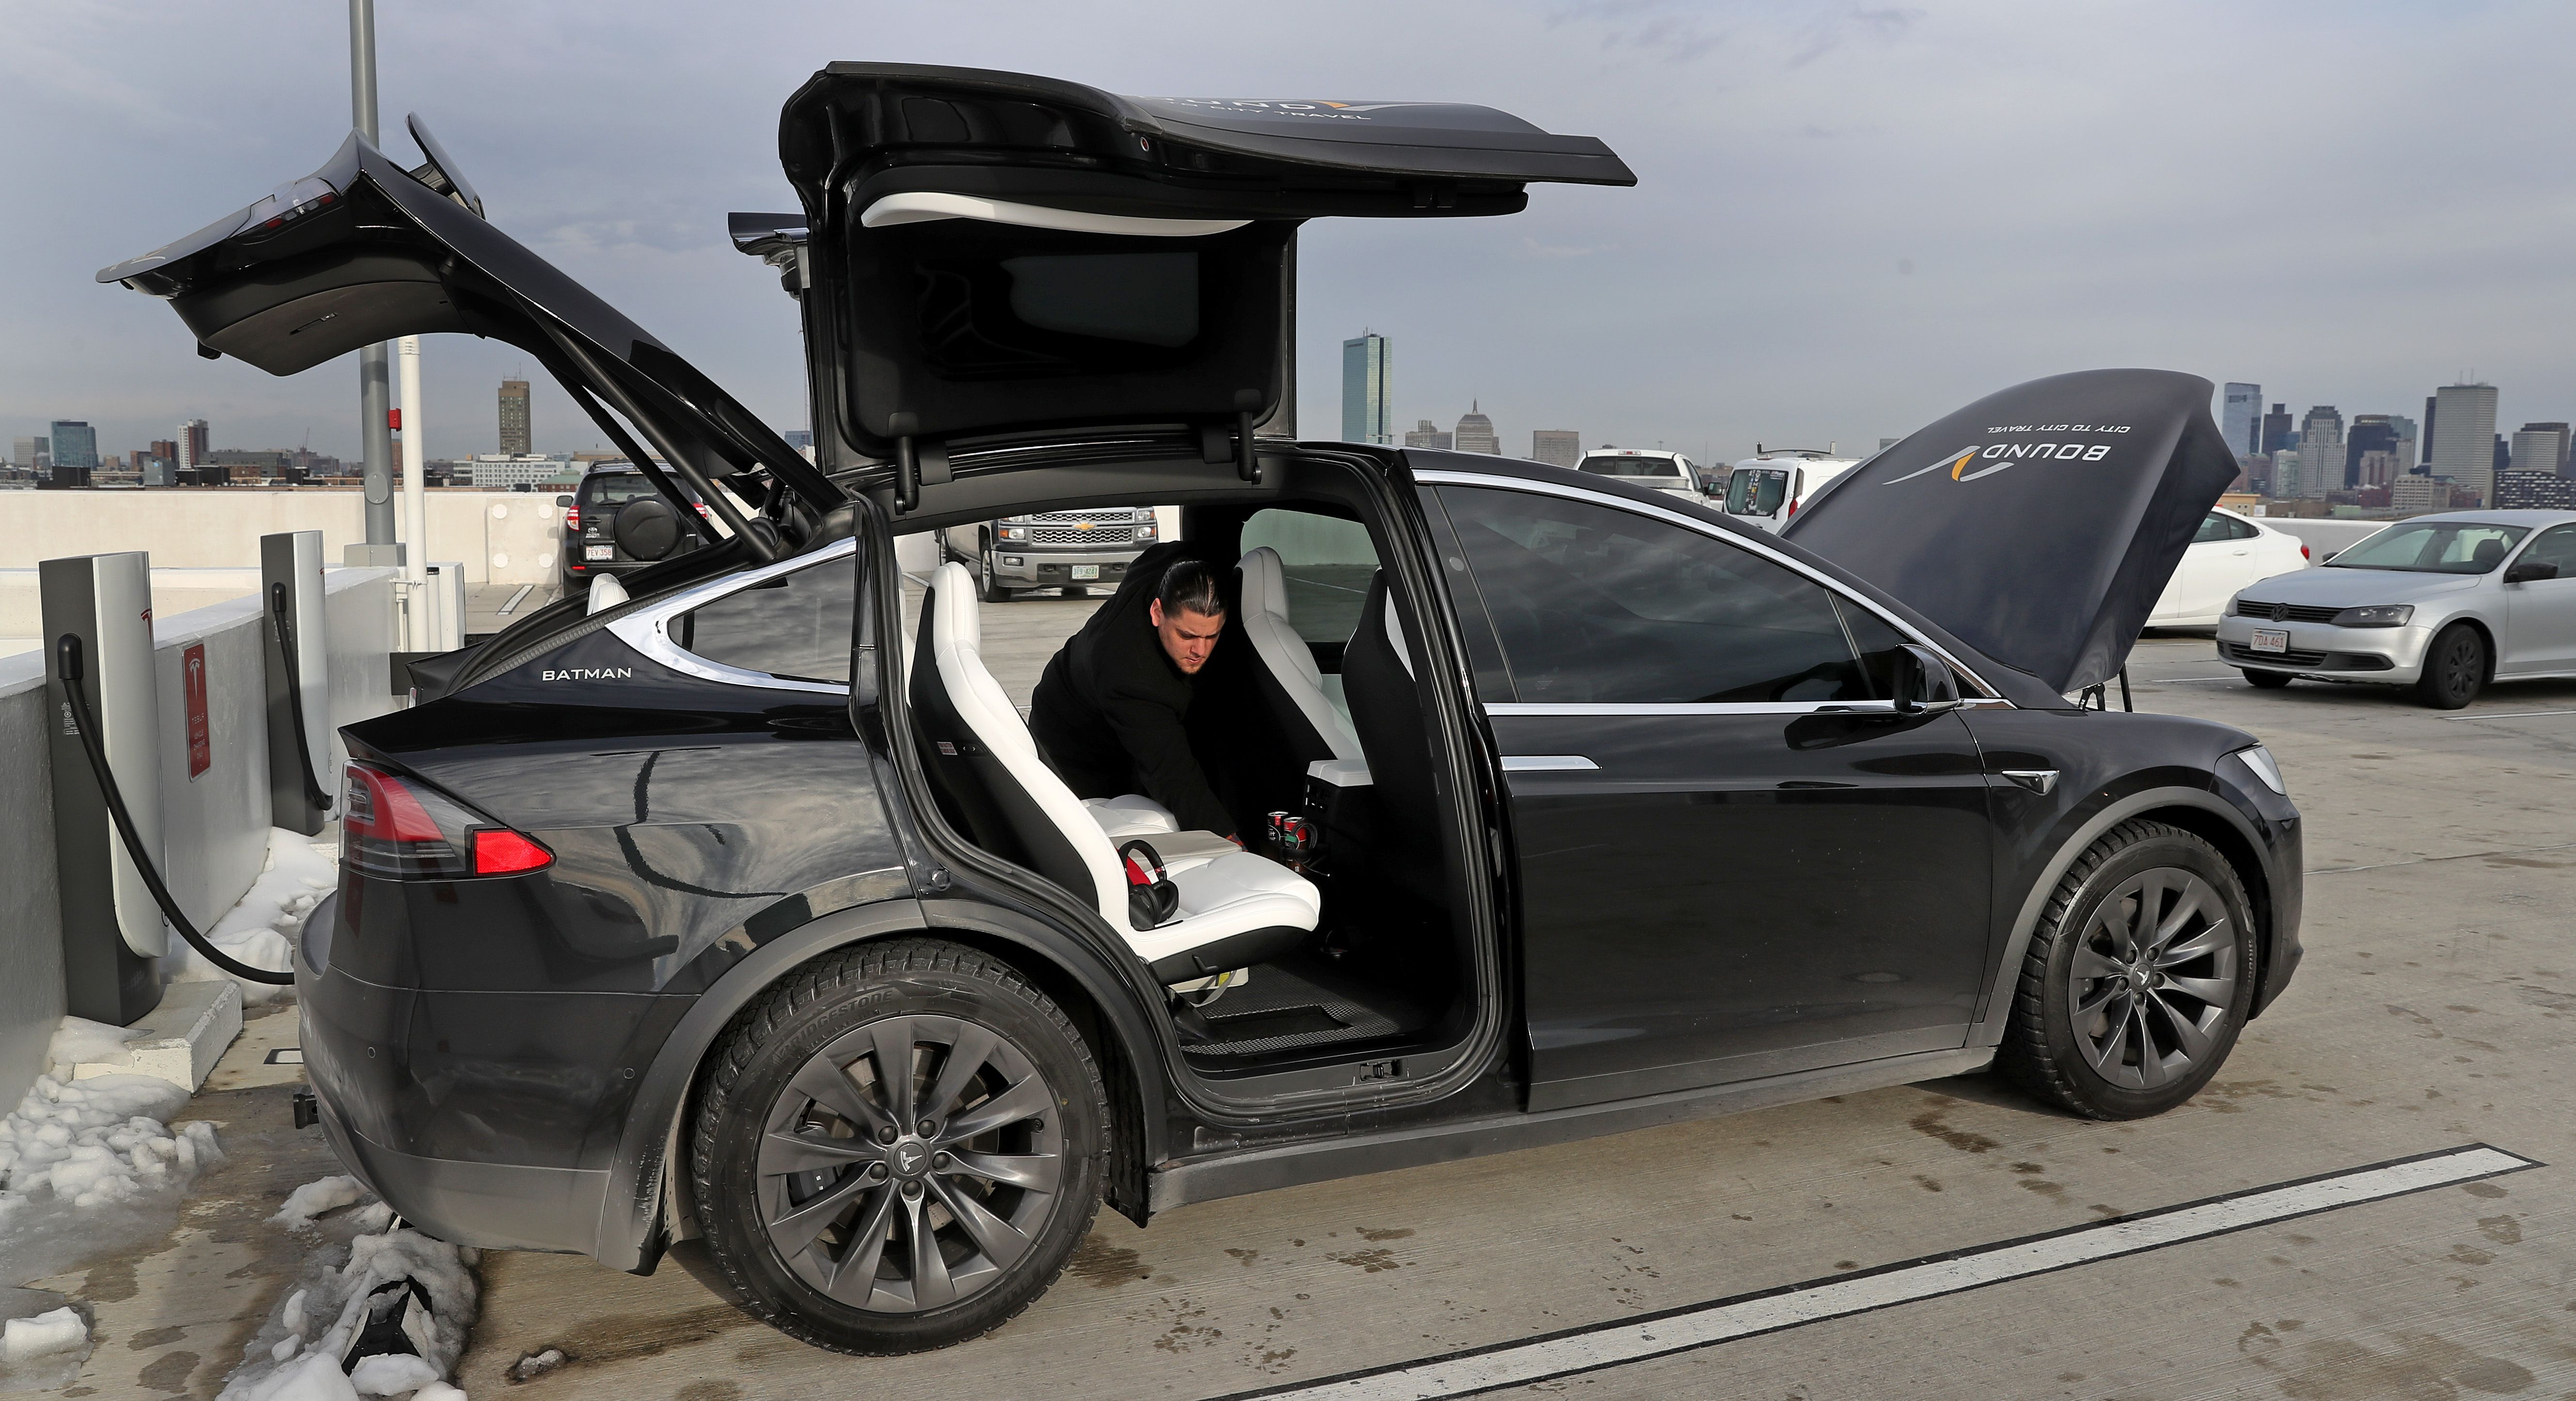 Electric dreams: Boston to New York in a Tesla, for $99 - The Boston